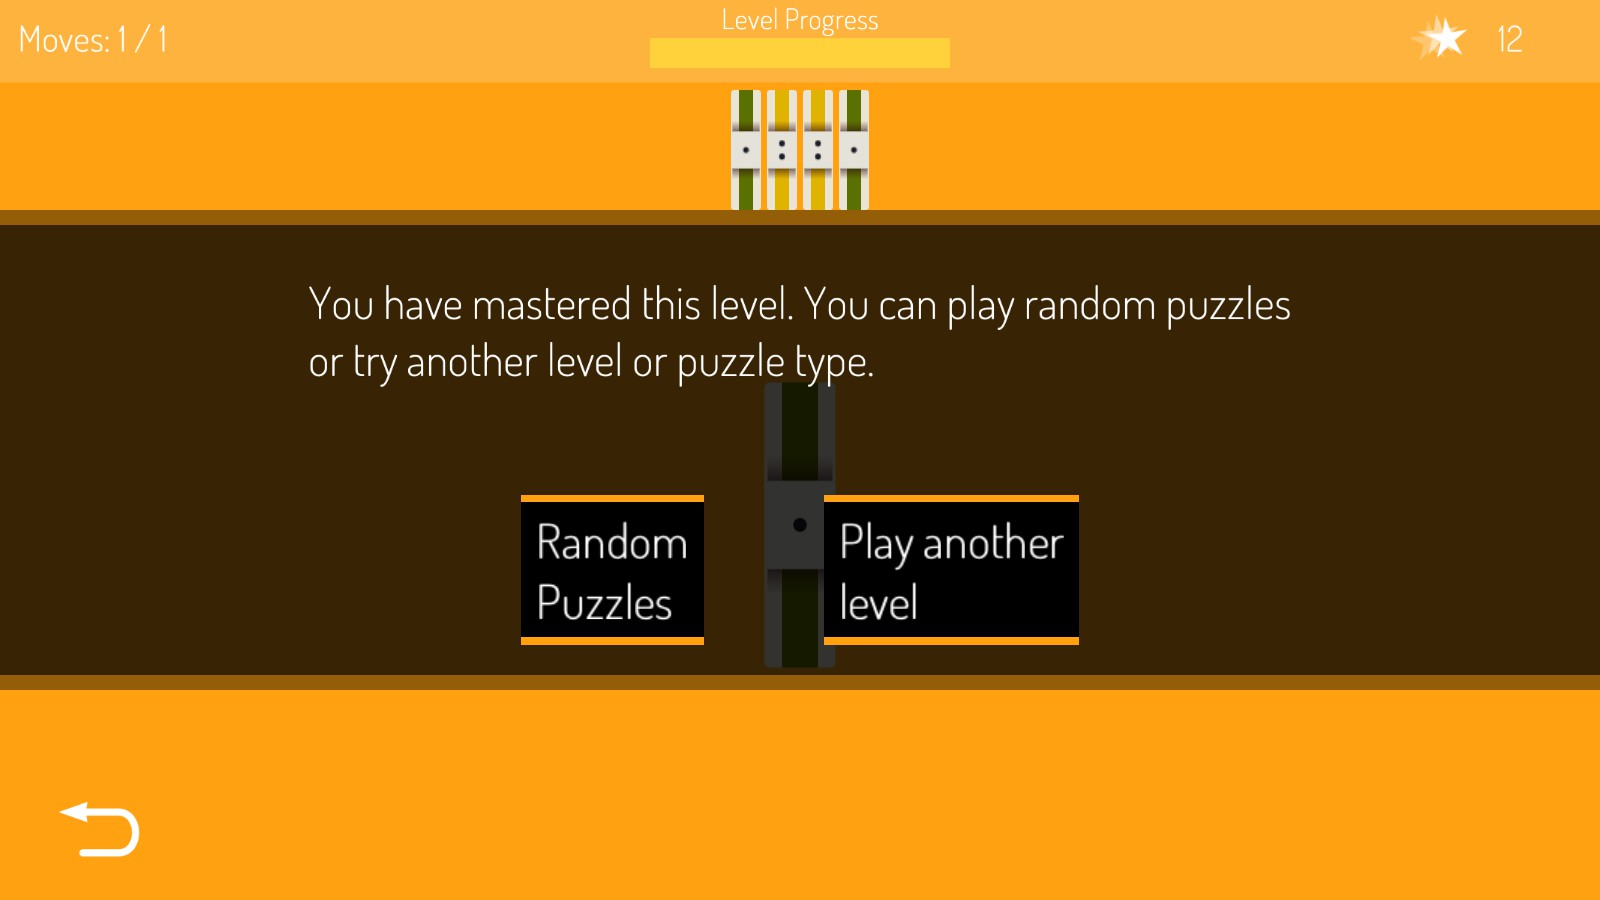 image of text saying: you have mastered this level. you can play random puzzles or try another level or puzzle type. options are random puzzles or play another level